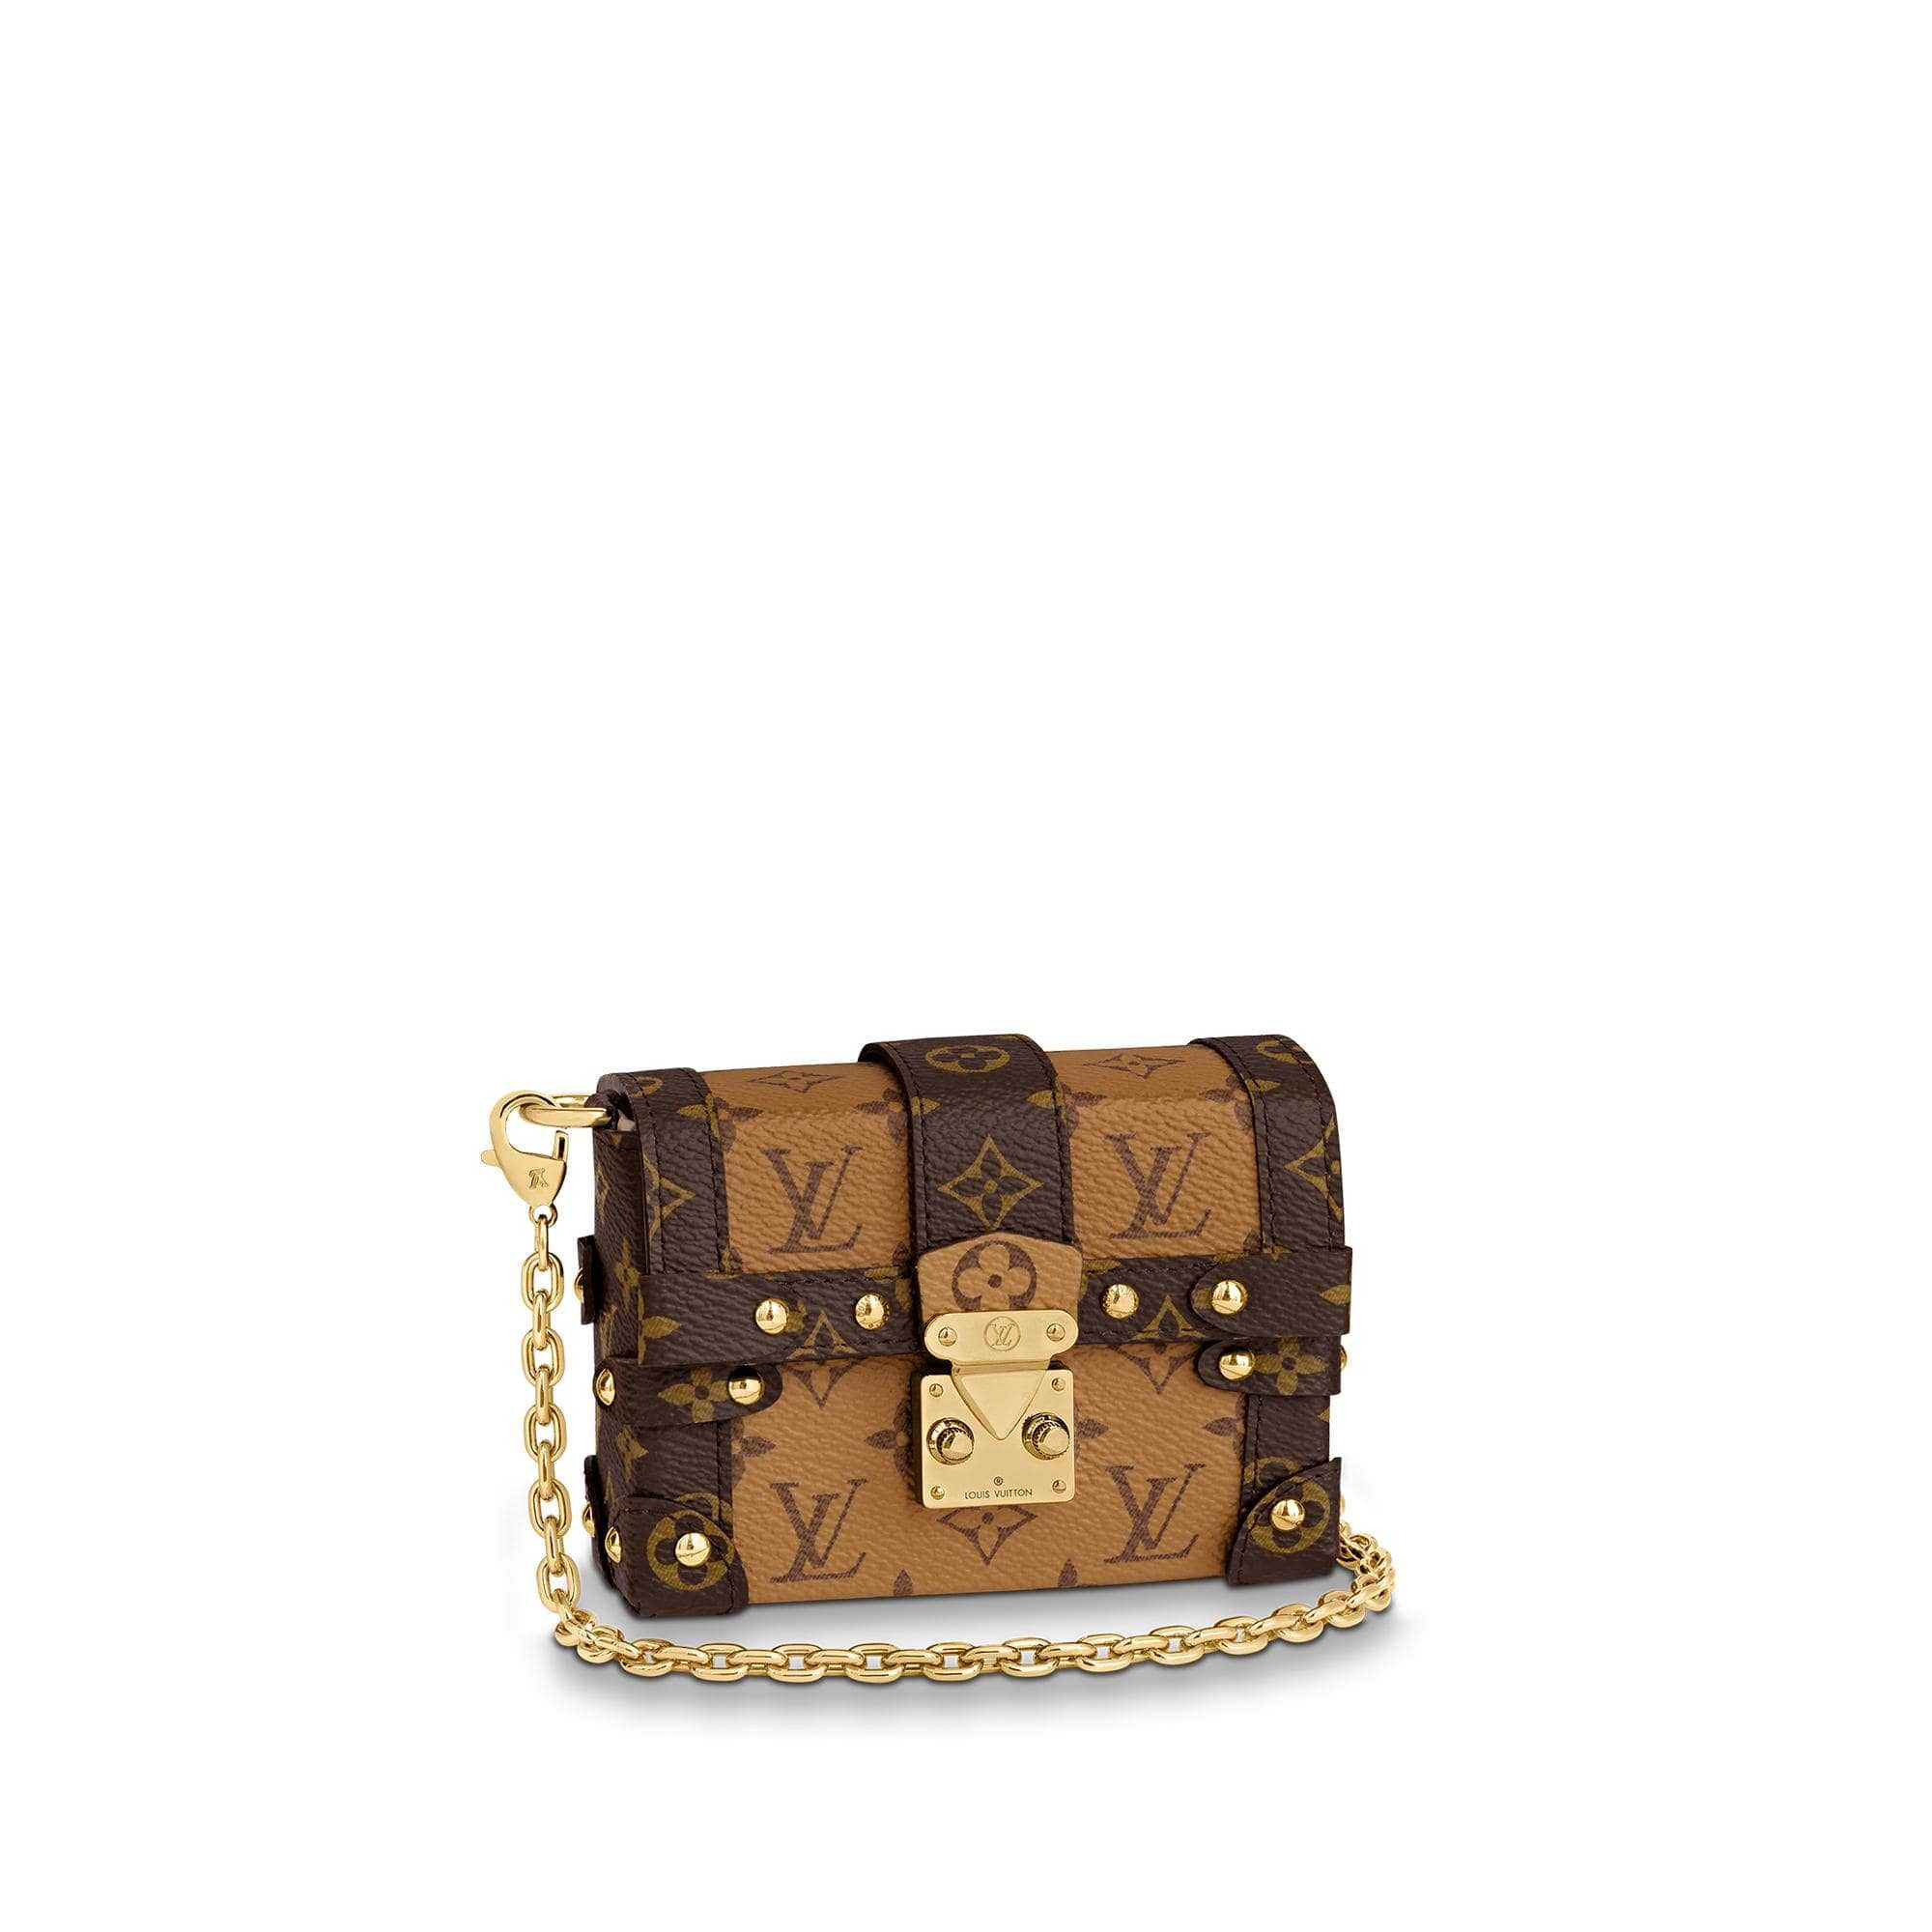 LV M68575 ESSENTIAL TRUNK 黄花链条包